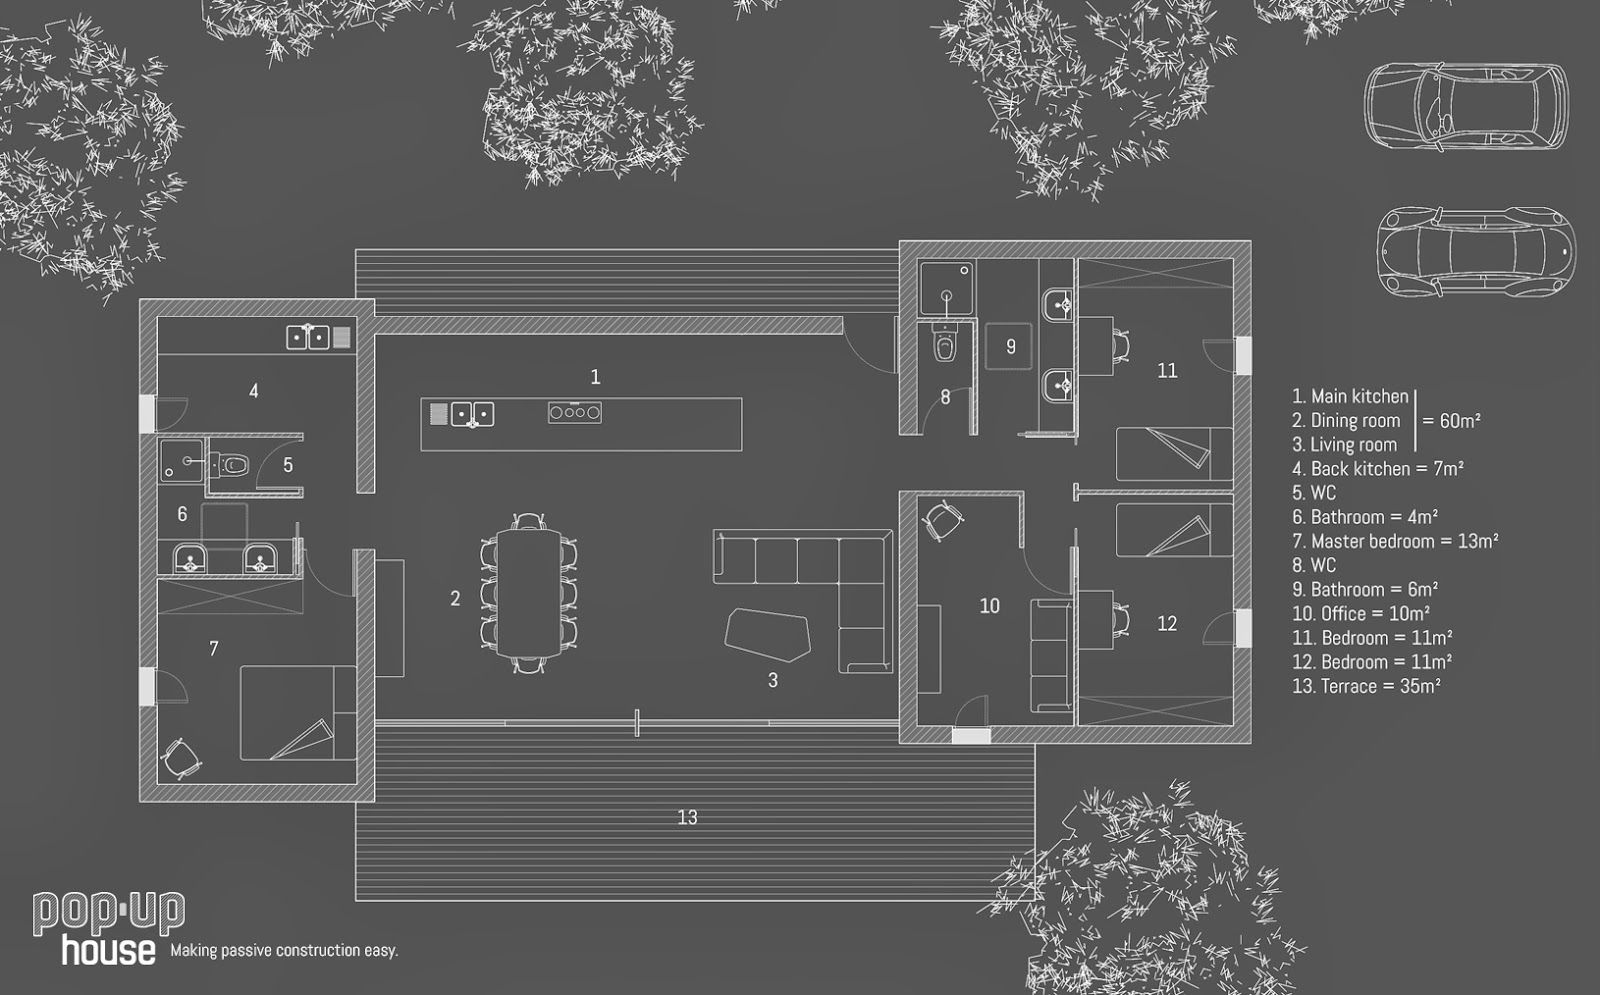 Build In 4 Days Popup House Architecture Passive House